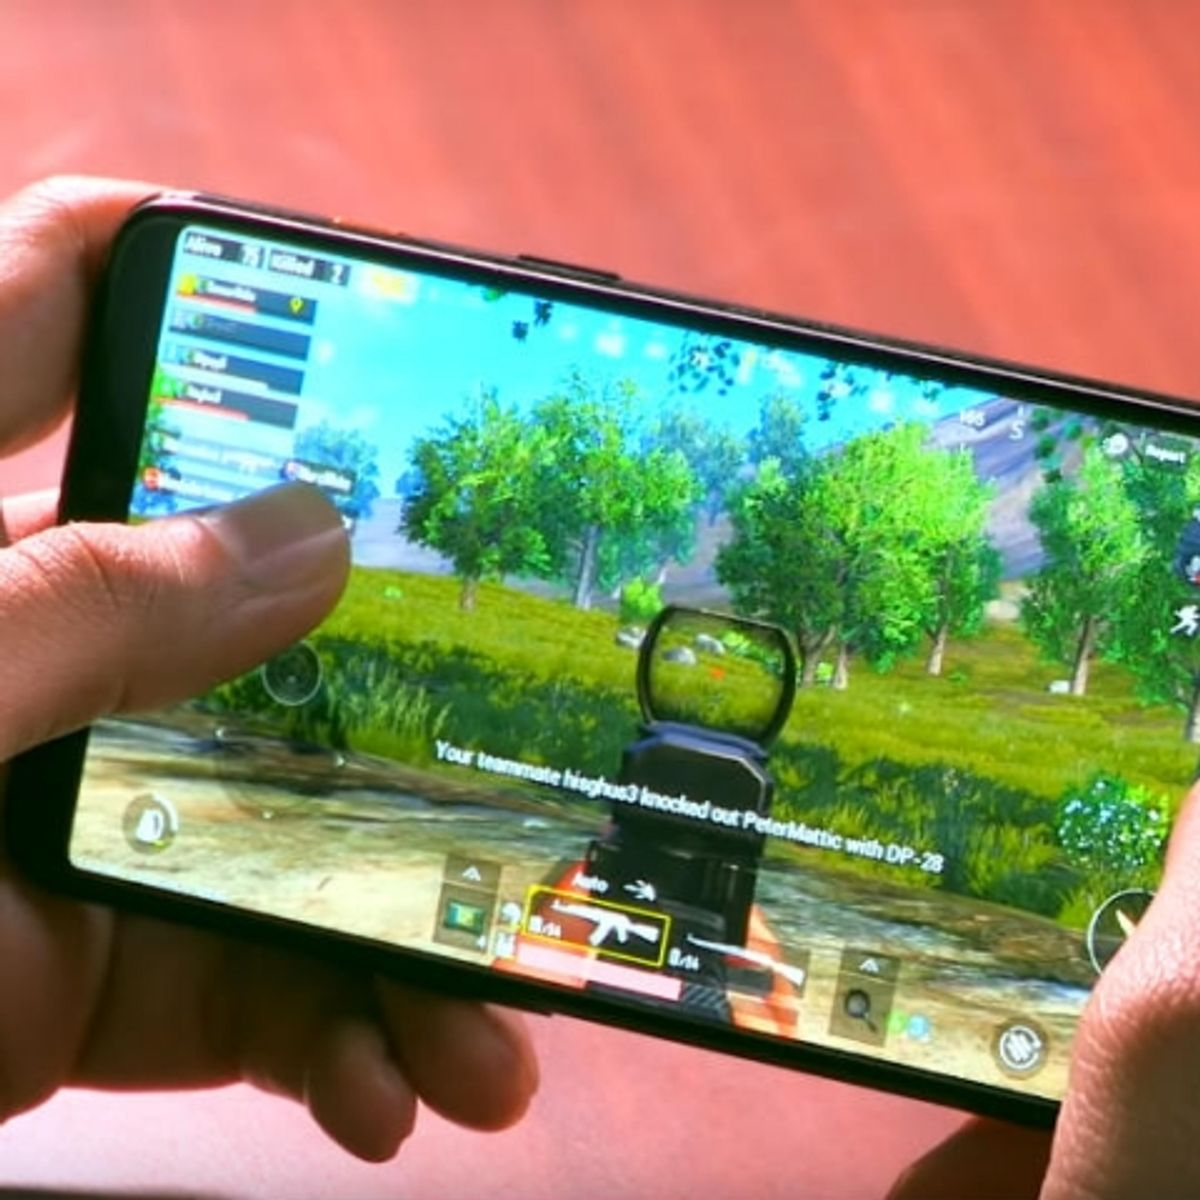 PUBG players in India prefer using smartphones to play the